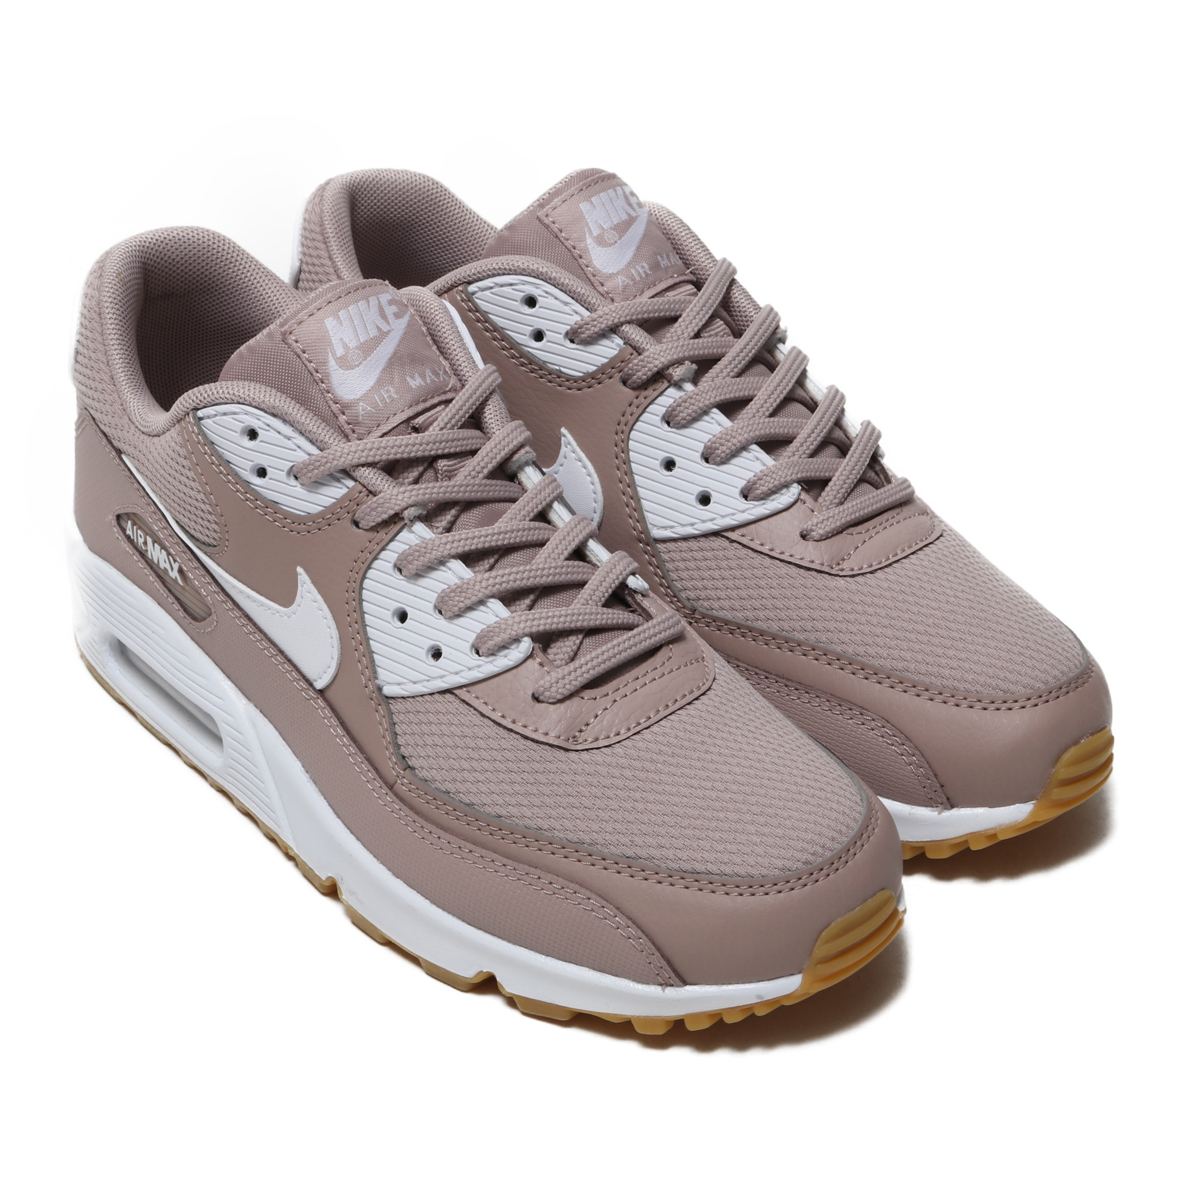 NIKE WMNS AIR MAX 90 (Nike women Air Max 90) DIFFUSED TAUPE/WHITE-GUM LIGHT BROWN 18FA-I